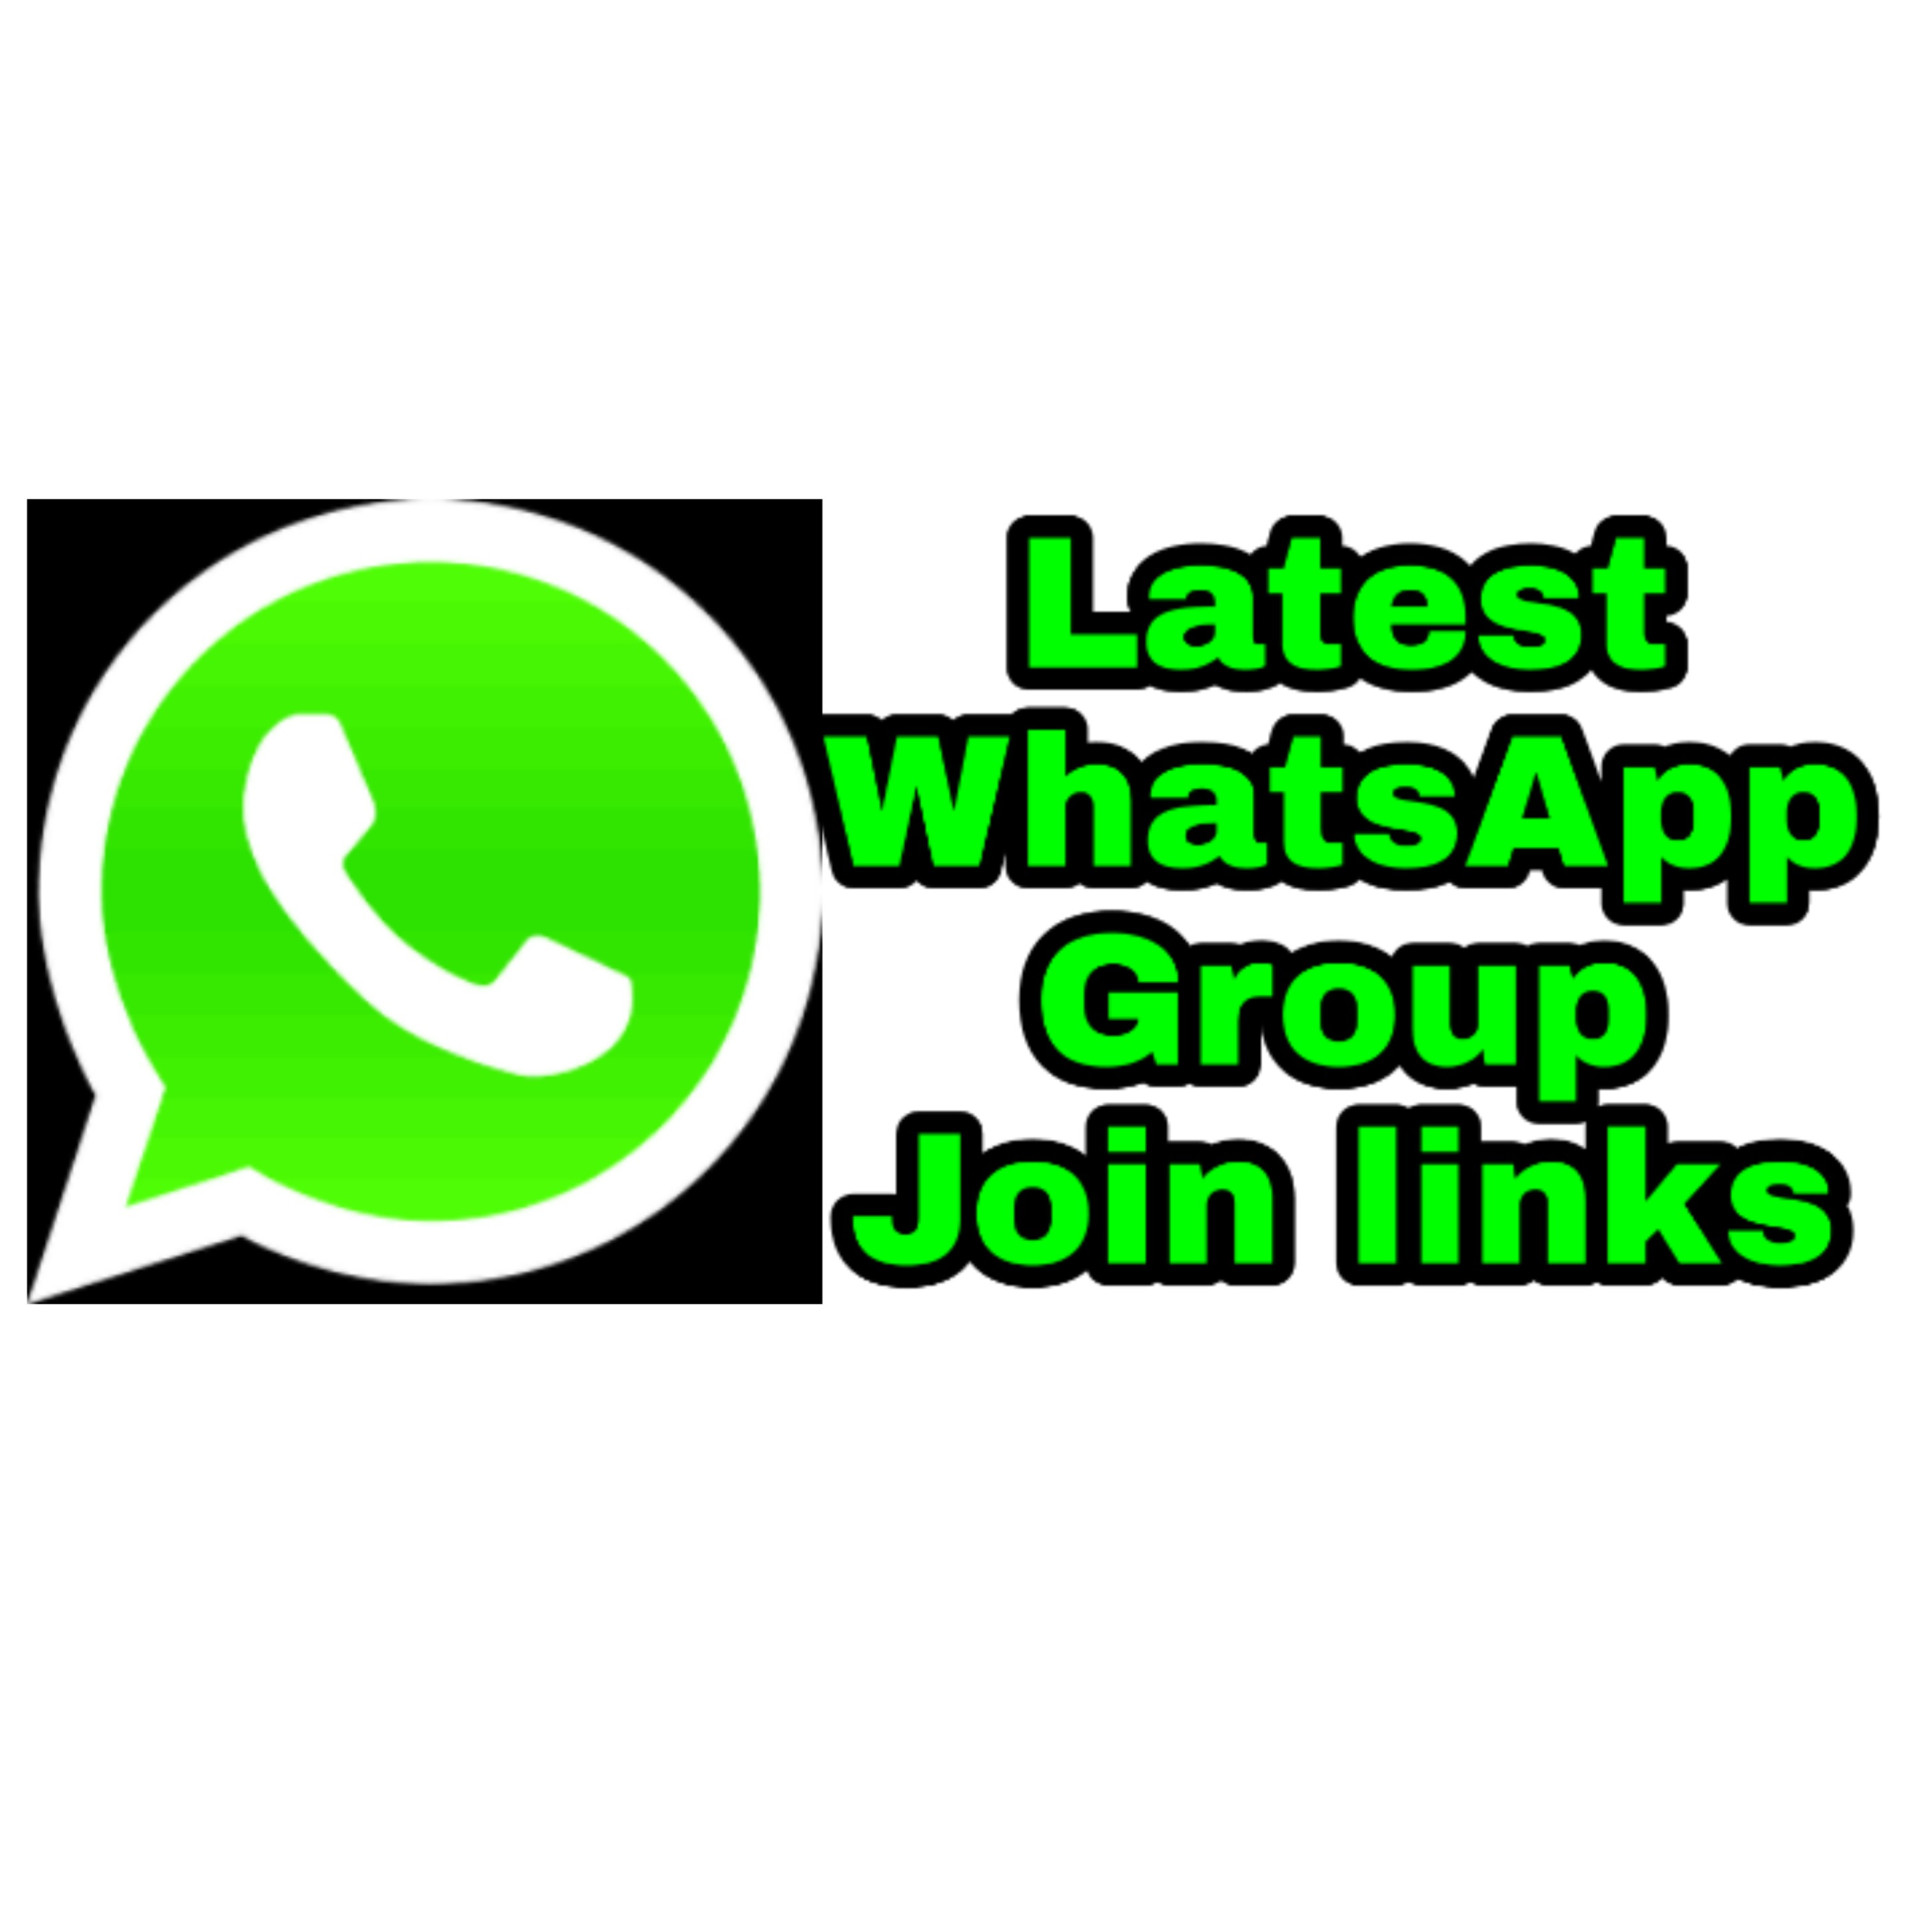 1000+ Latest WhatsApp Group Join Links, 2019 » Tech2Tube